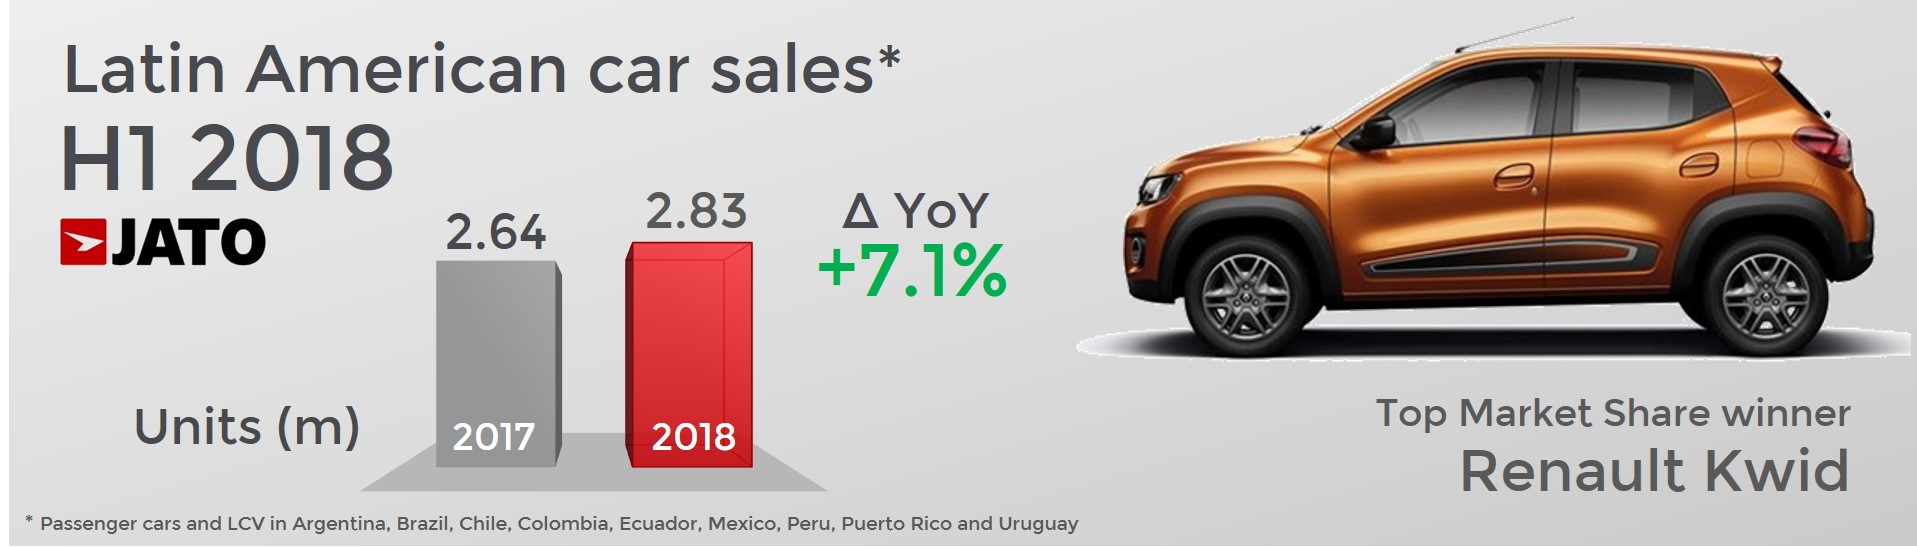 Latin American Car Market Continues Its Upturn With Sales Up By 7